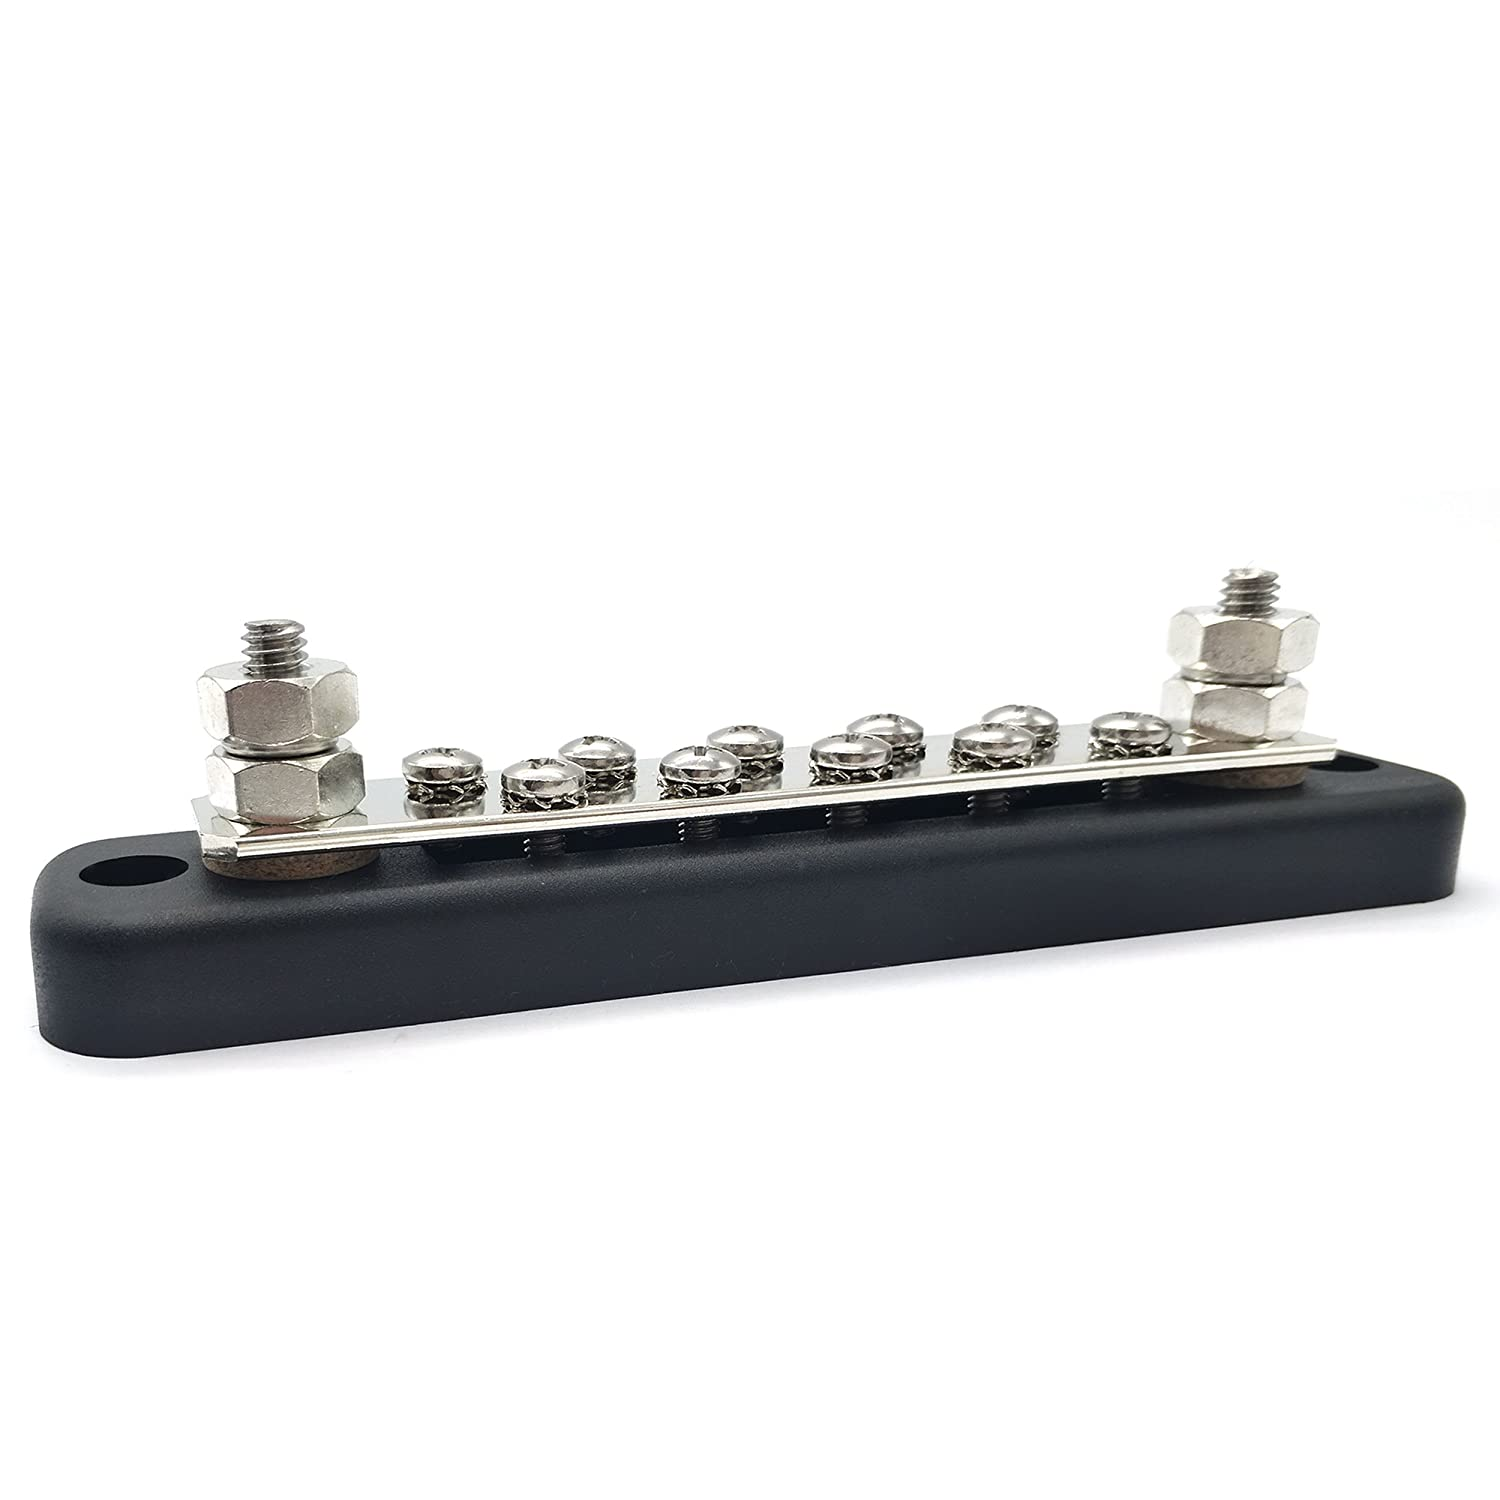 Iztor 150A Line Buss Bar 10 Screw Terminals Ground Distribution Block Kits